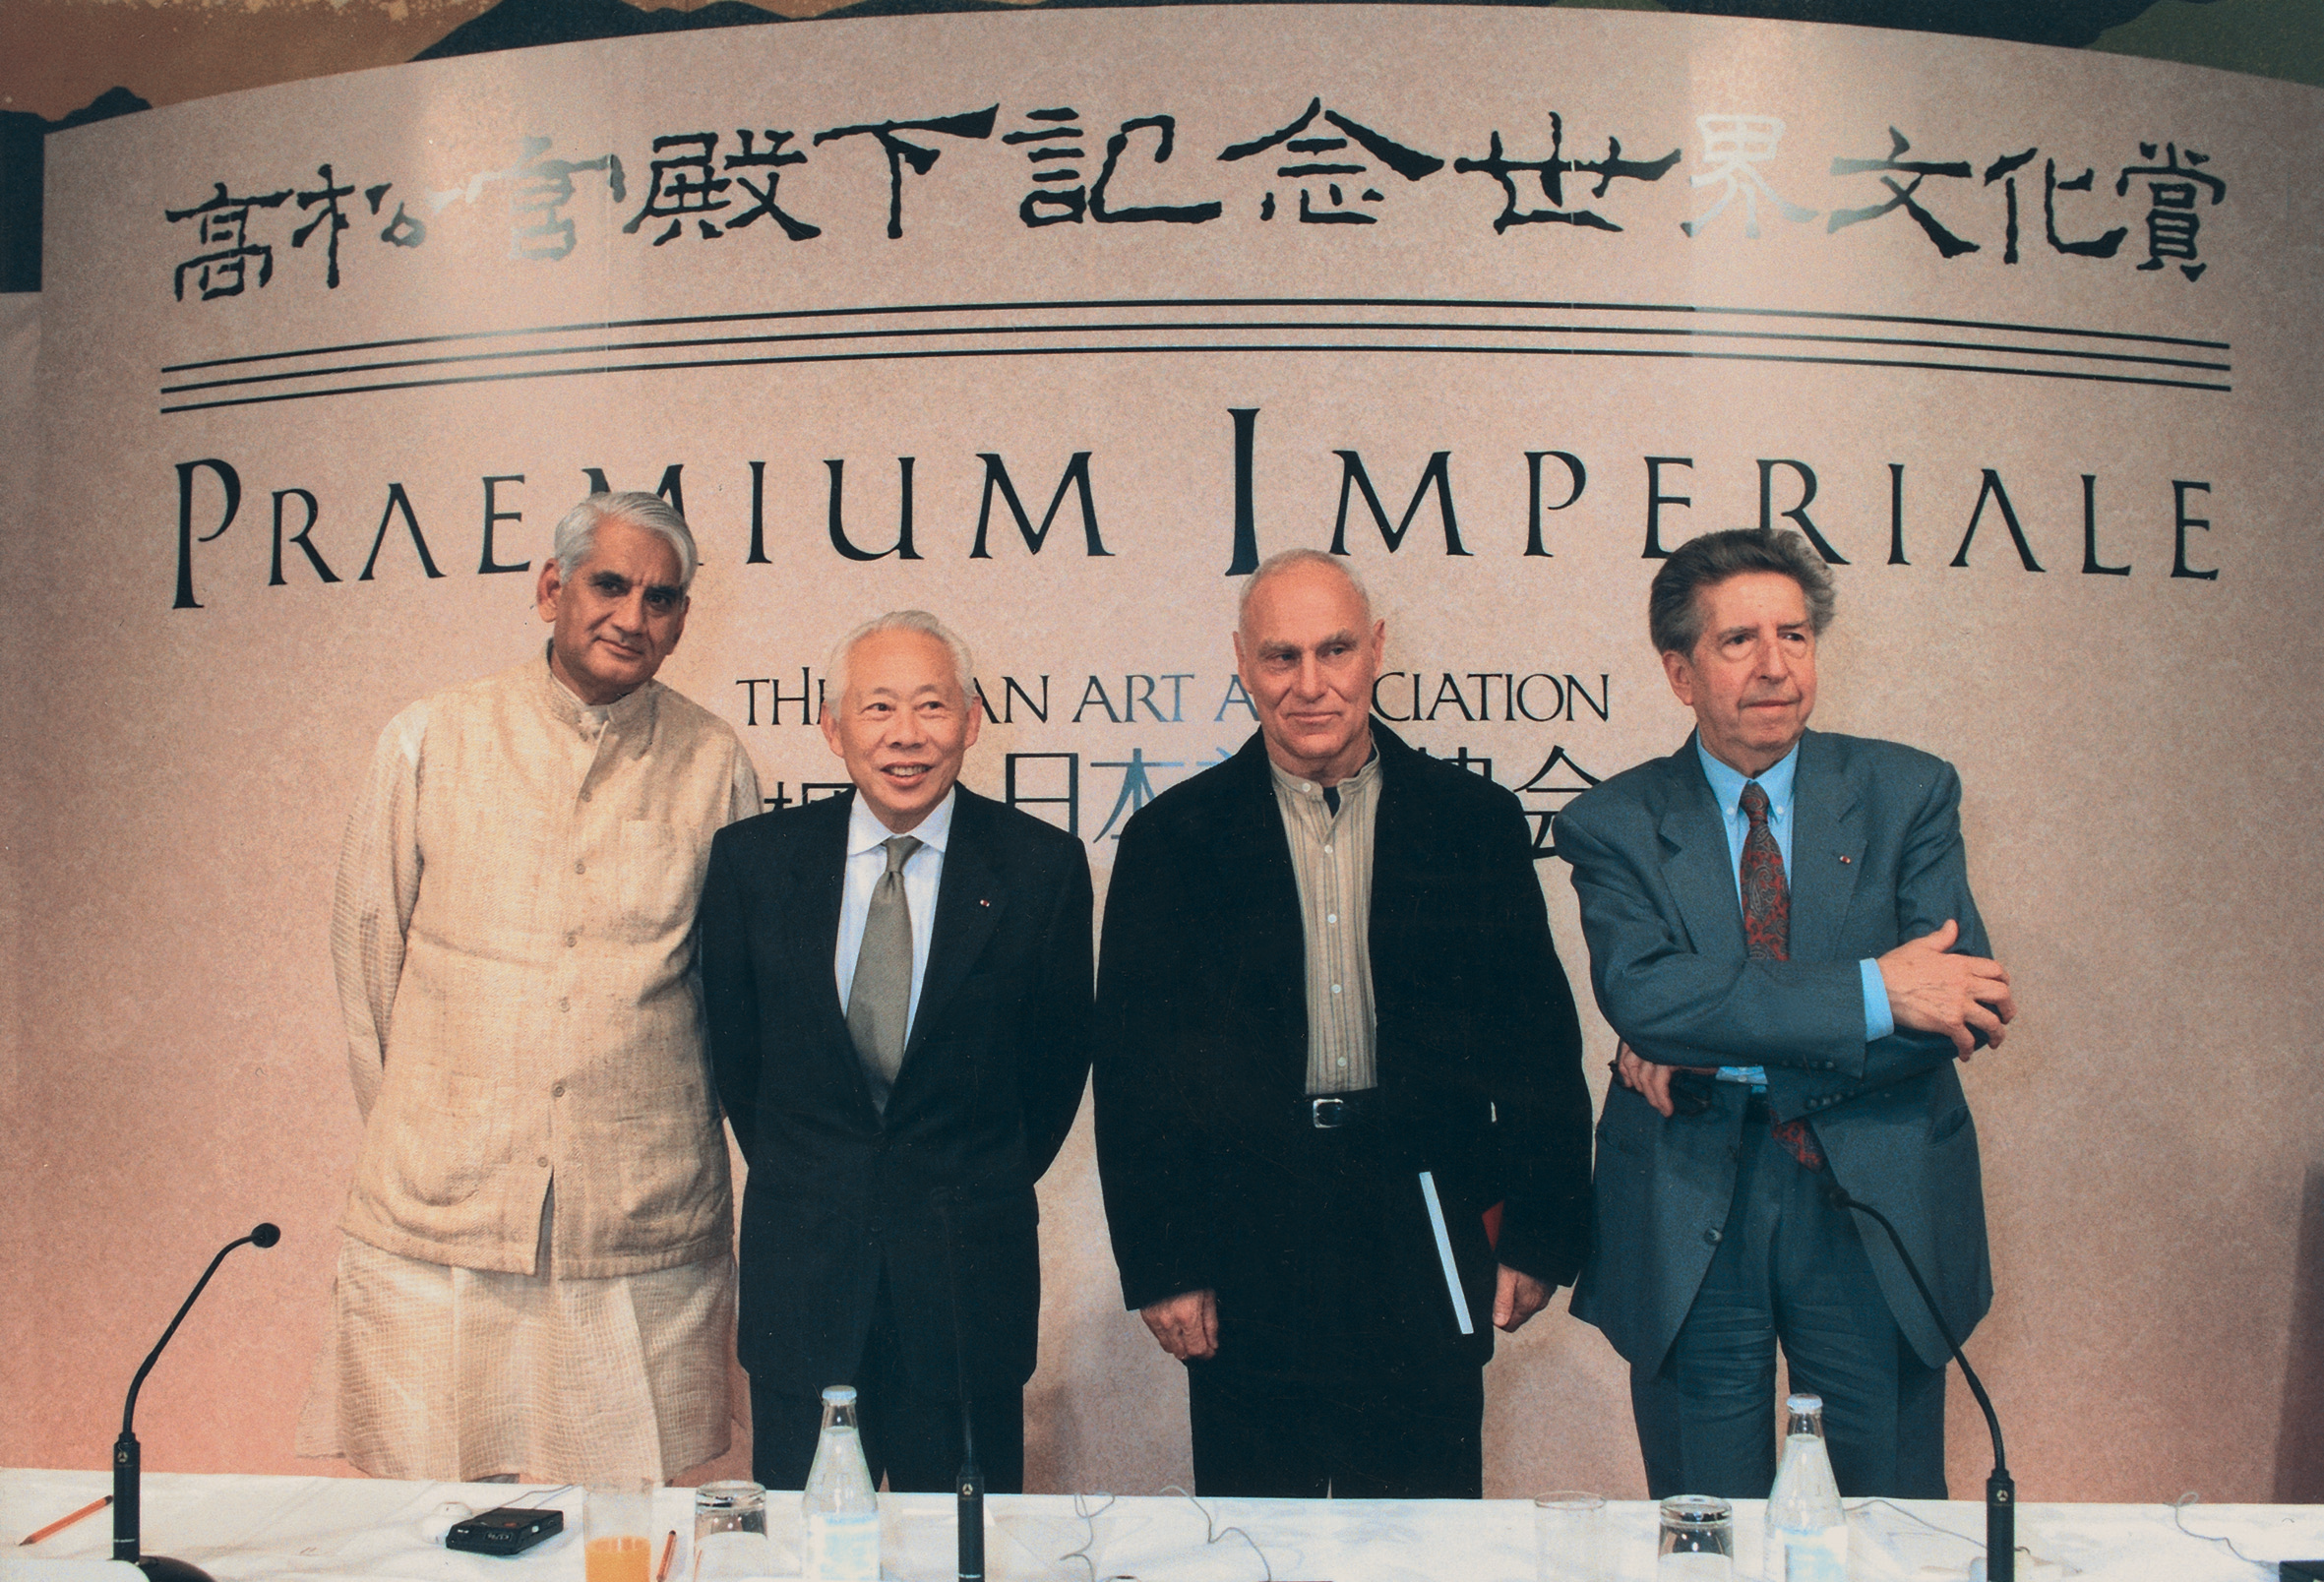 The winners of the  Praemium Imperiale  of Japan in 1994: Charles Correa (architecture), Zao Wou-Ki (painting), Richard Serra (sculpture) and Henri Dutilleux (music). All rights reserved.